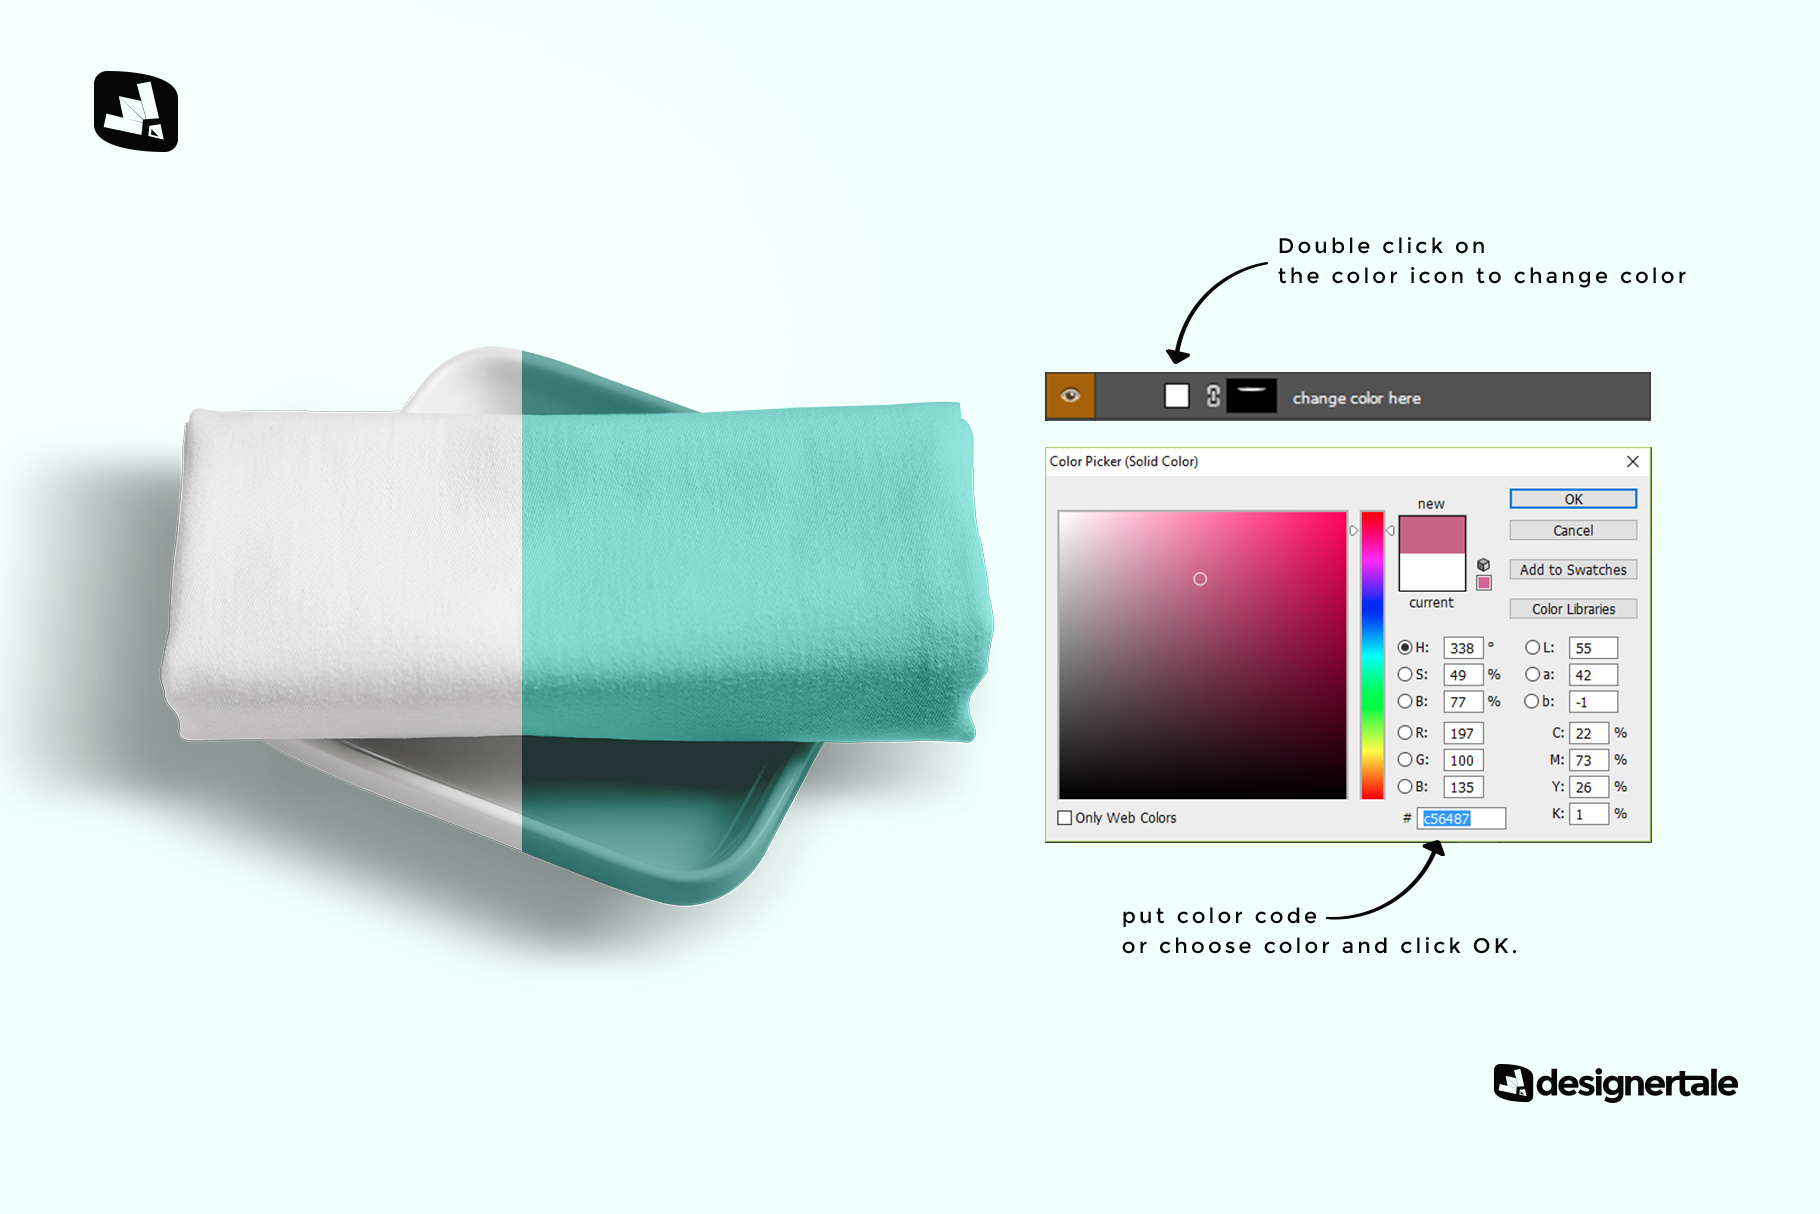 how to change color of the top view dinner cloth with dish mockup